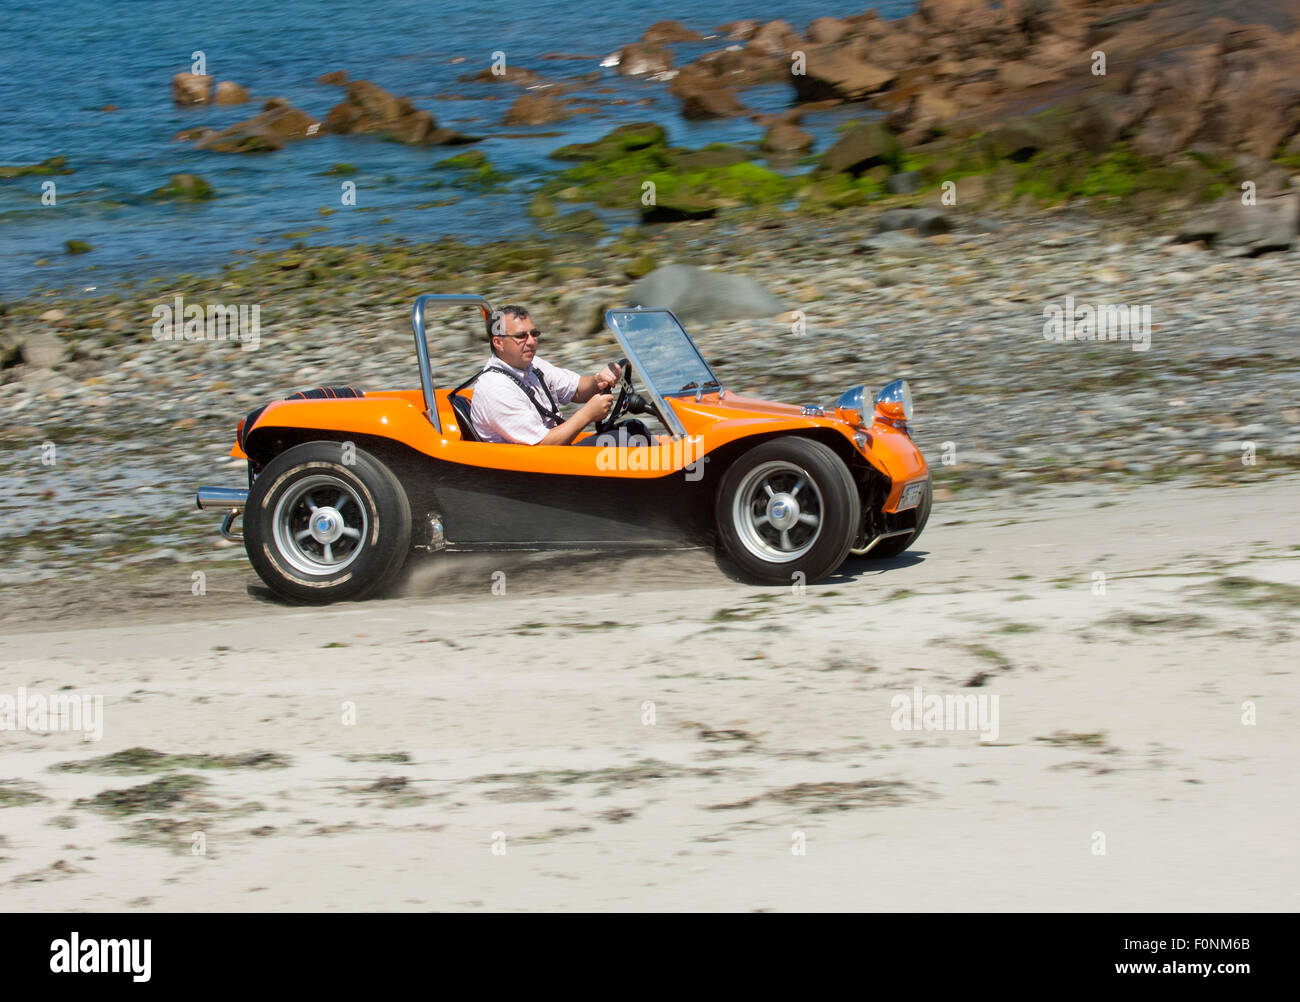 strandbuggy an einem sandstrand vw k fer basis dune buggy auto stockfoto bild 86528691 alamy. Black Bedroom Furniture Sets. Home Design Ideas